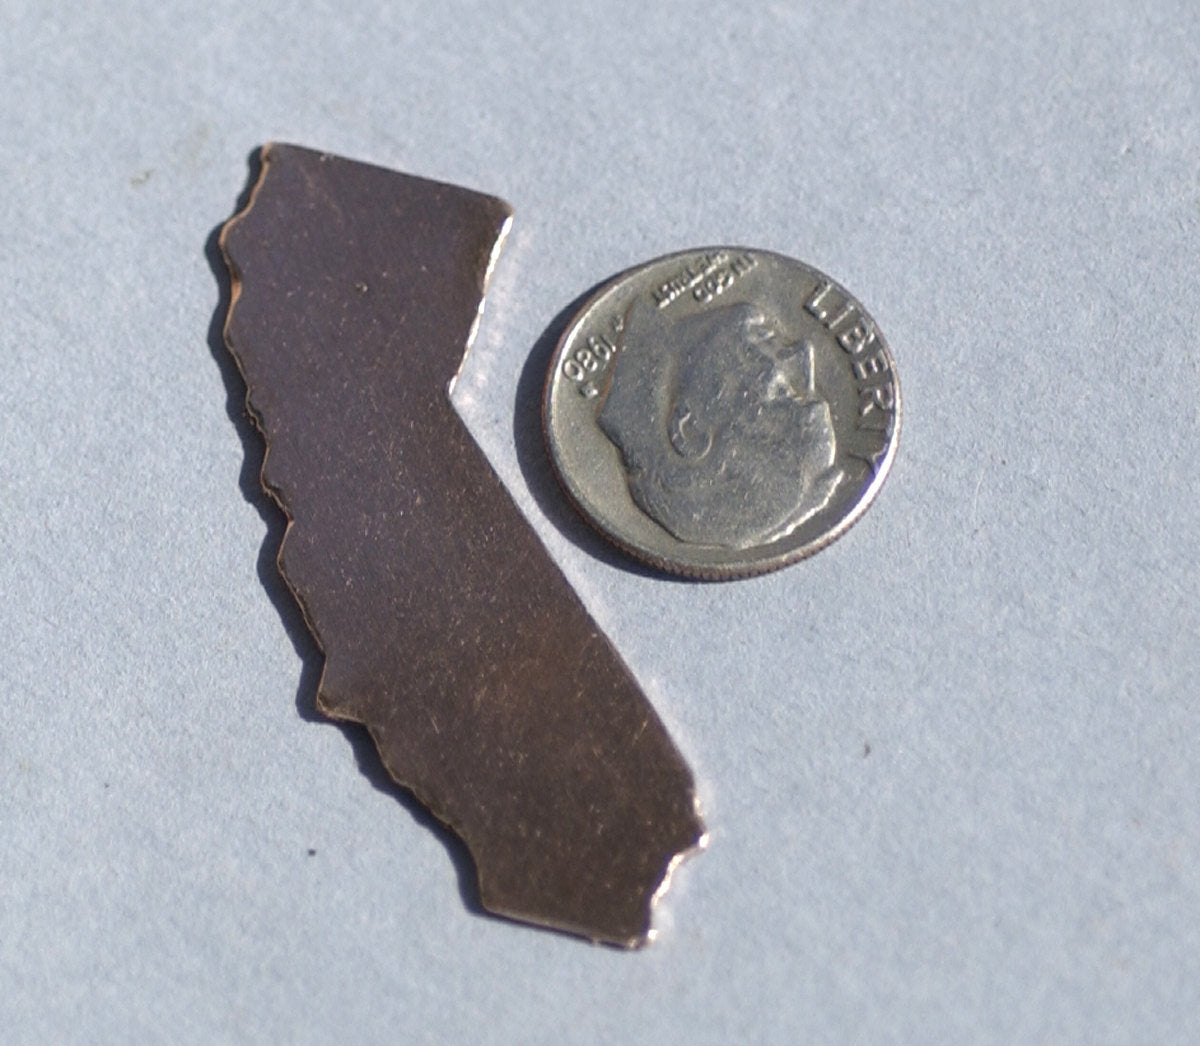 Copper or Brass or Bronze California State Blanks Cutout for Enameling Metalworking Stamping Texturing - Jewelry Supplies - 4 pieces